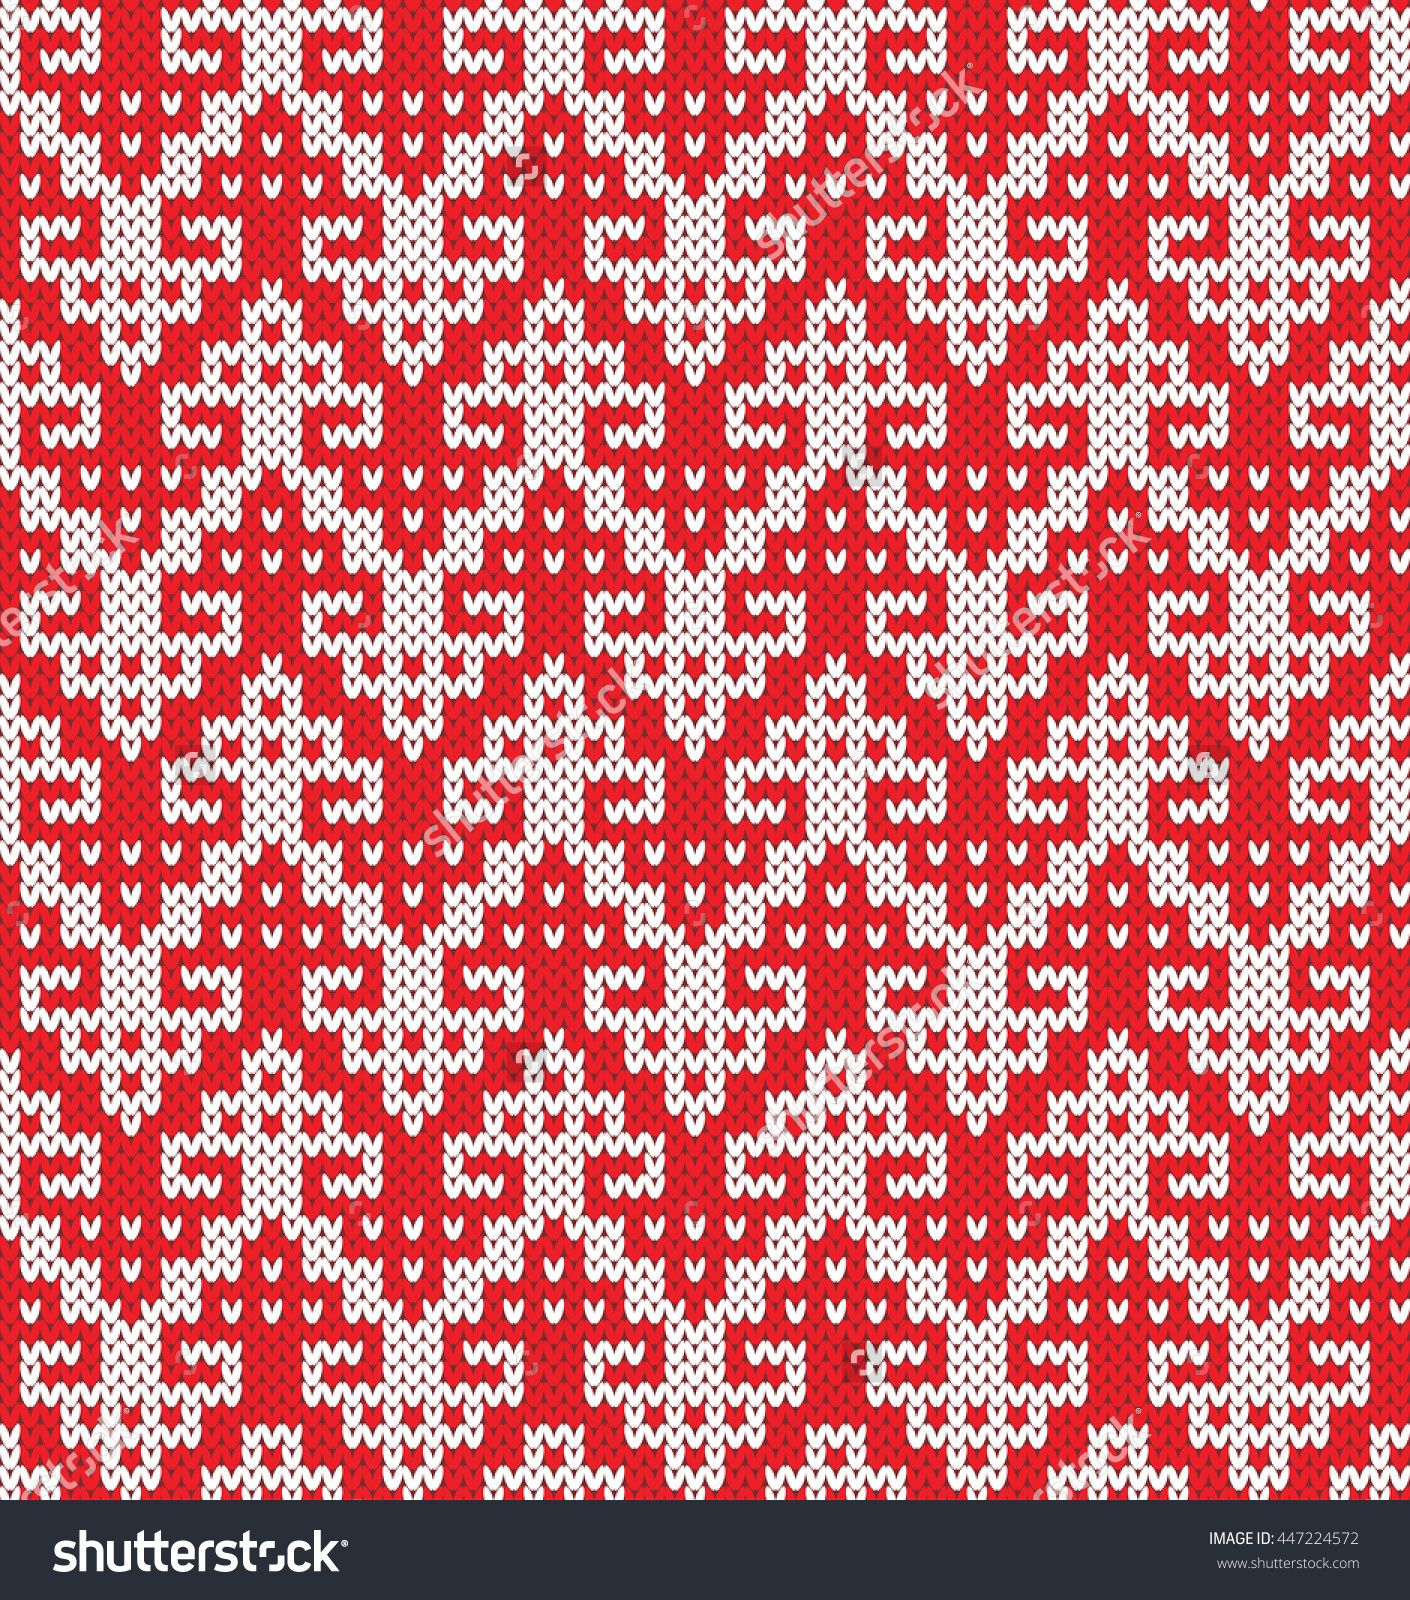 Seamless Knitting Patterns Jacquard Pattern Vector At Getdrawings Free For Personal Use